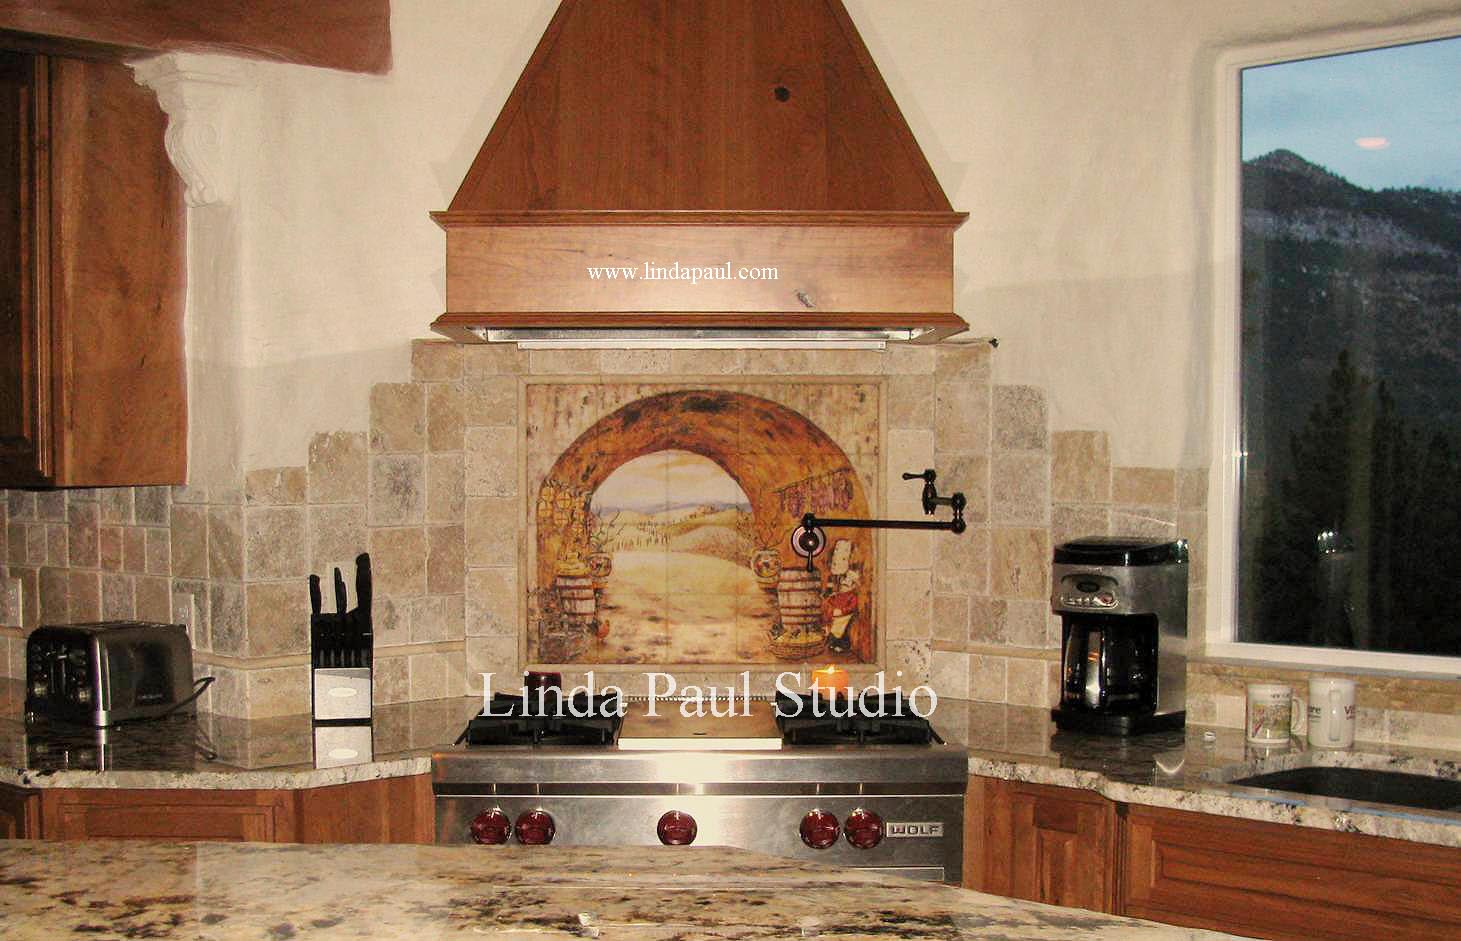 Kitchen backsplash ideas gallery of tile backsplash pictures designs - Backsplash ideas kitchen ...